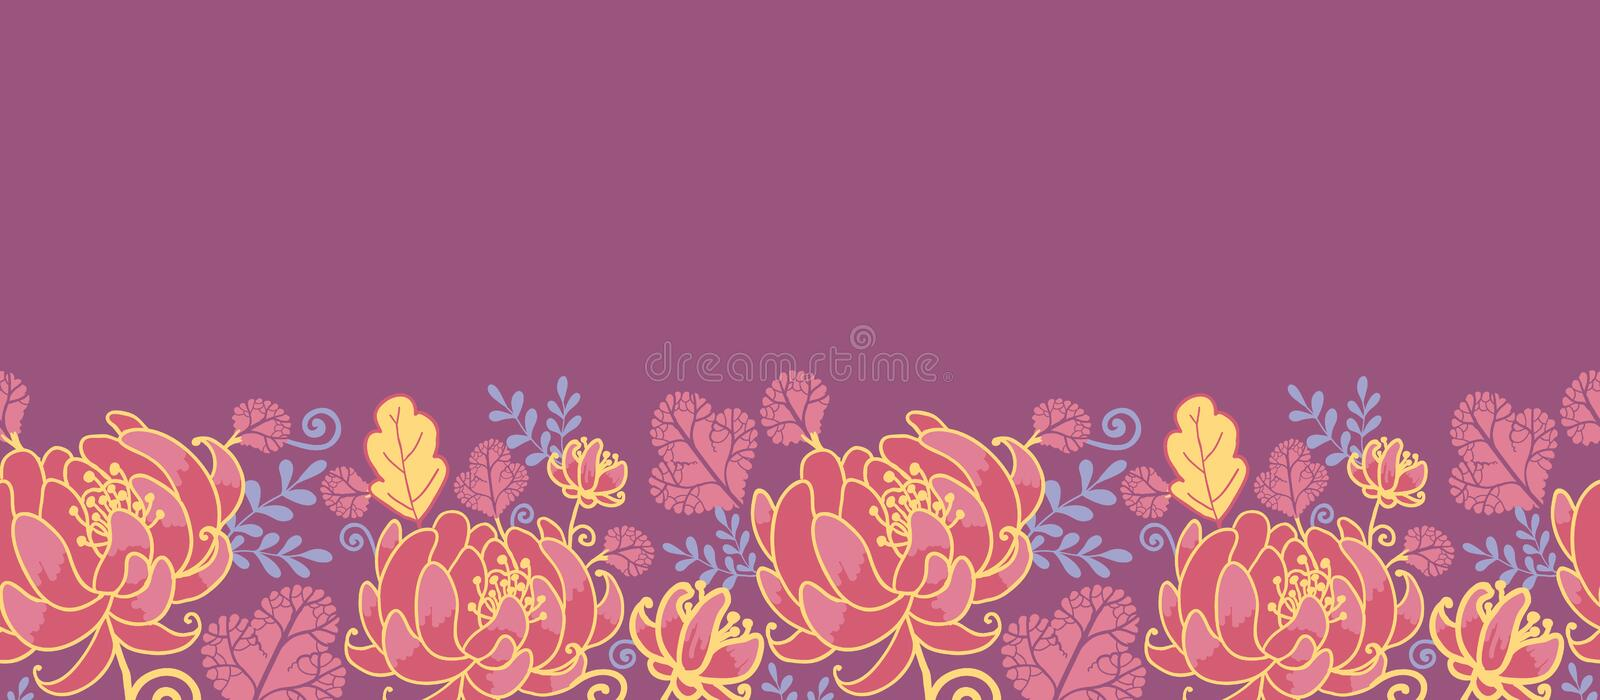 Magical flowers horizontal seamless pattern